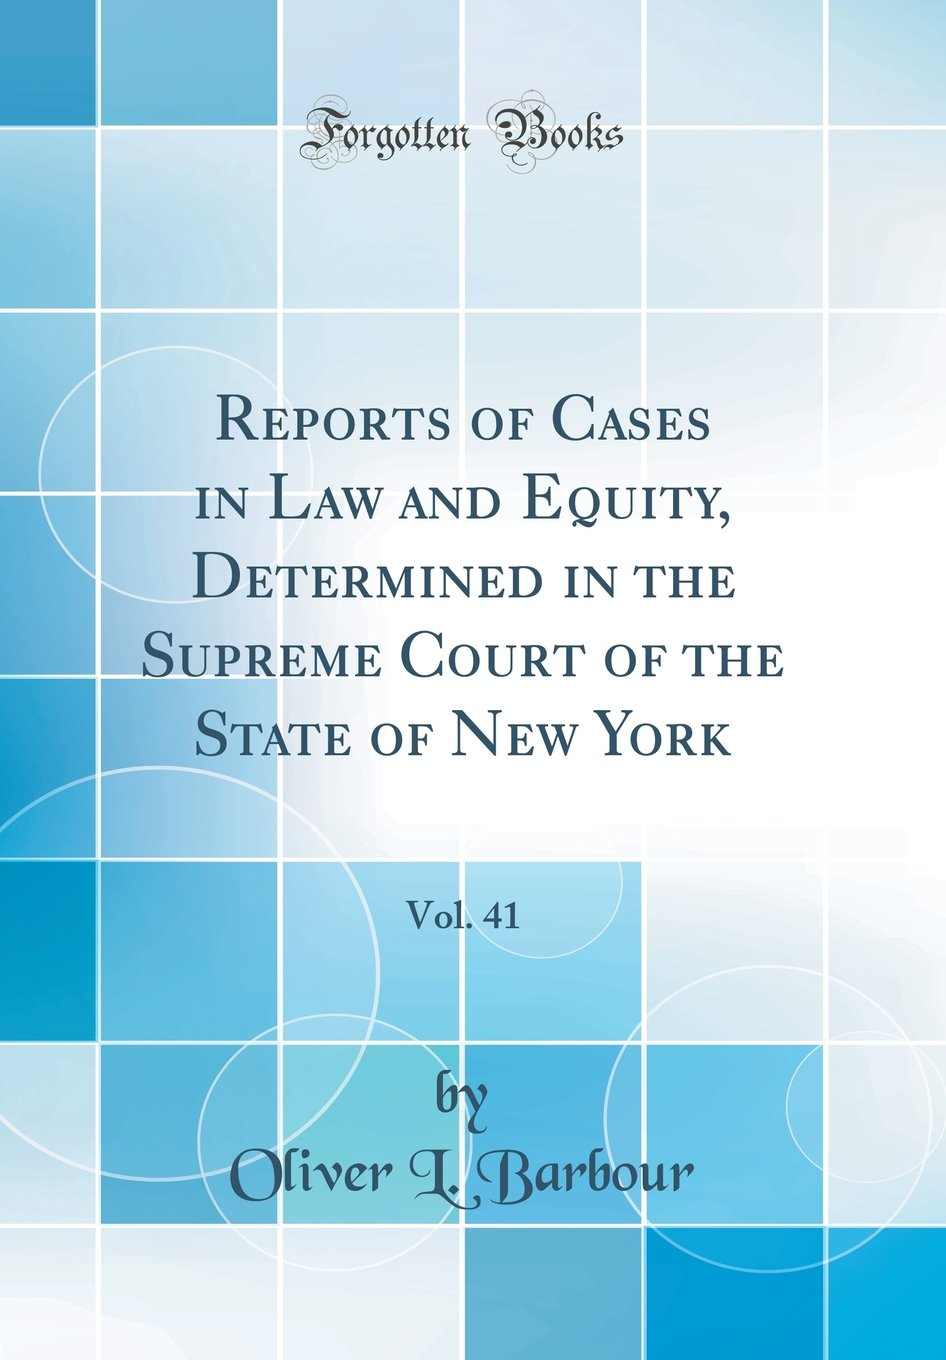 Read Online Reports of Cases in Law and Equity, Determined in the Supreme Court of the State of New York, Vol. 41 (Classic Reprint) ebook